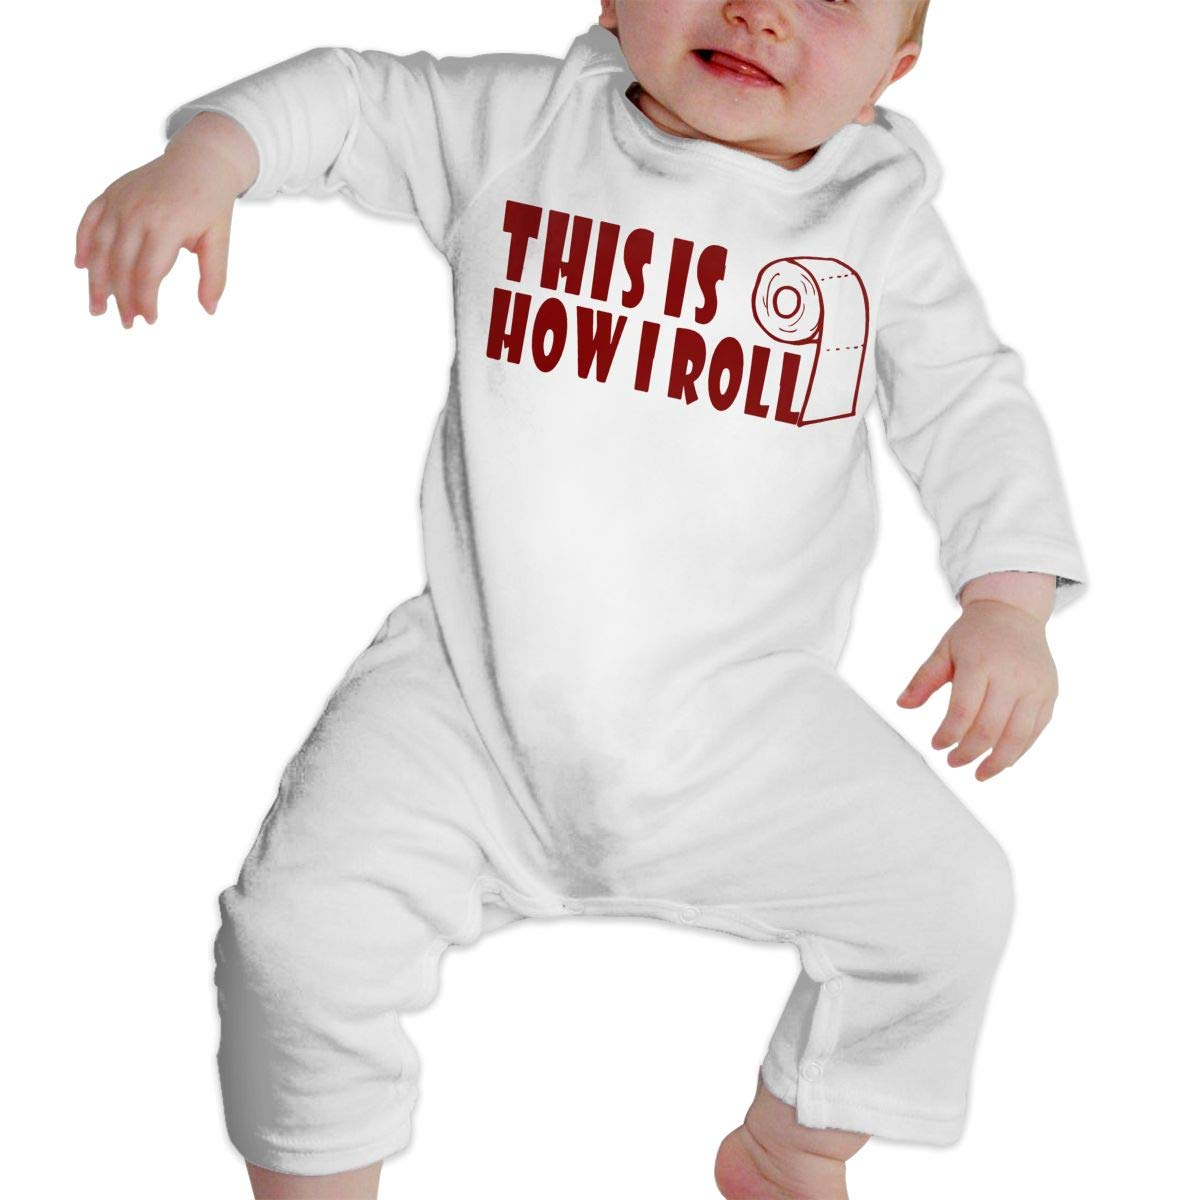 LBJQ8 This is How I ROLL-1 Baby Infant Girls Essential Basic Romper Jumpsuit Outfits Clothes